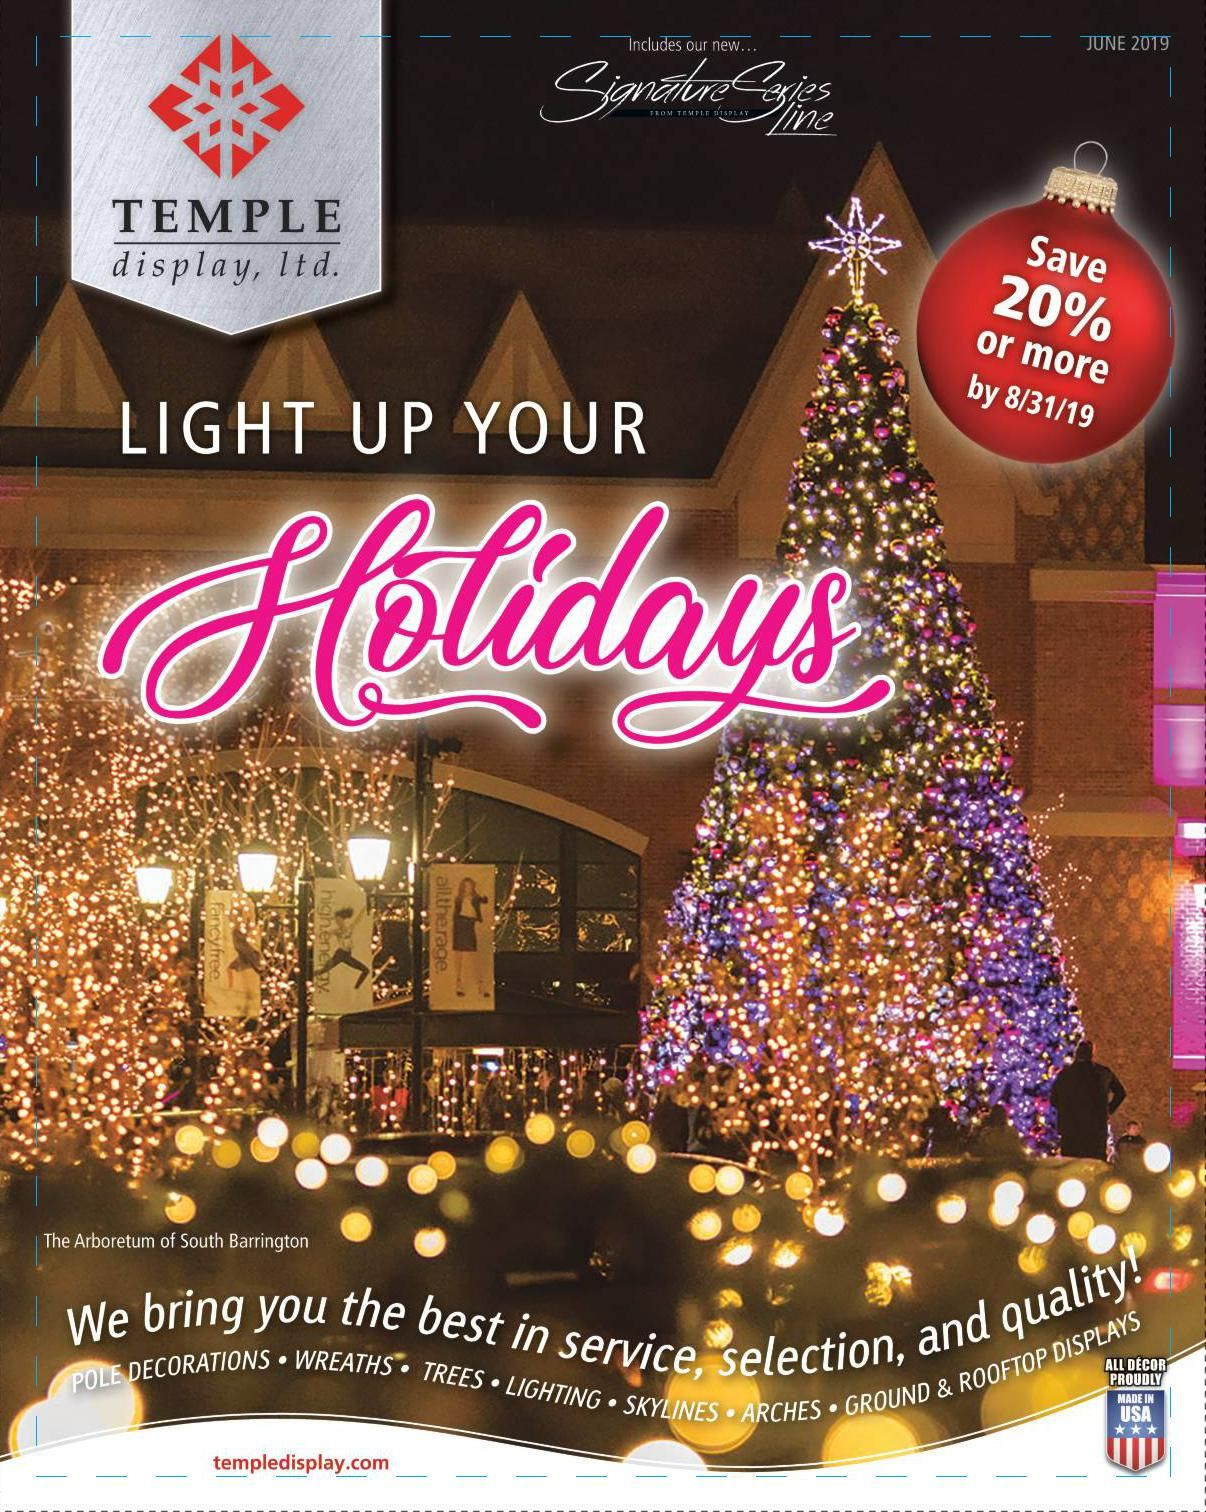 Temple Display S 2019 Catalog Release Temple Display Ltd Commercial Holiday Decor Commercial Christmas Lights Commercial Christmas Decorations